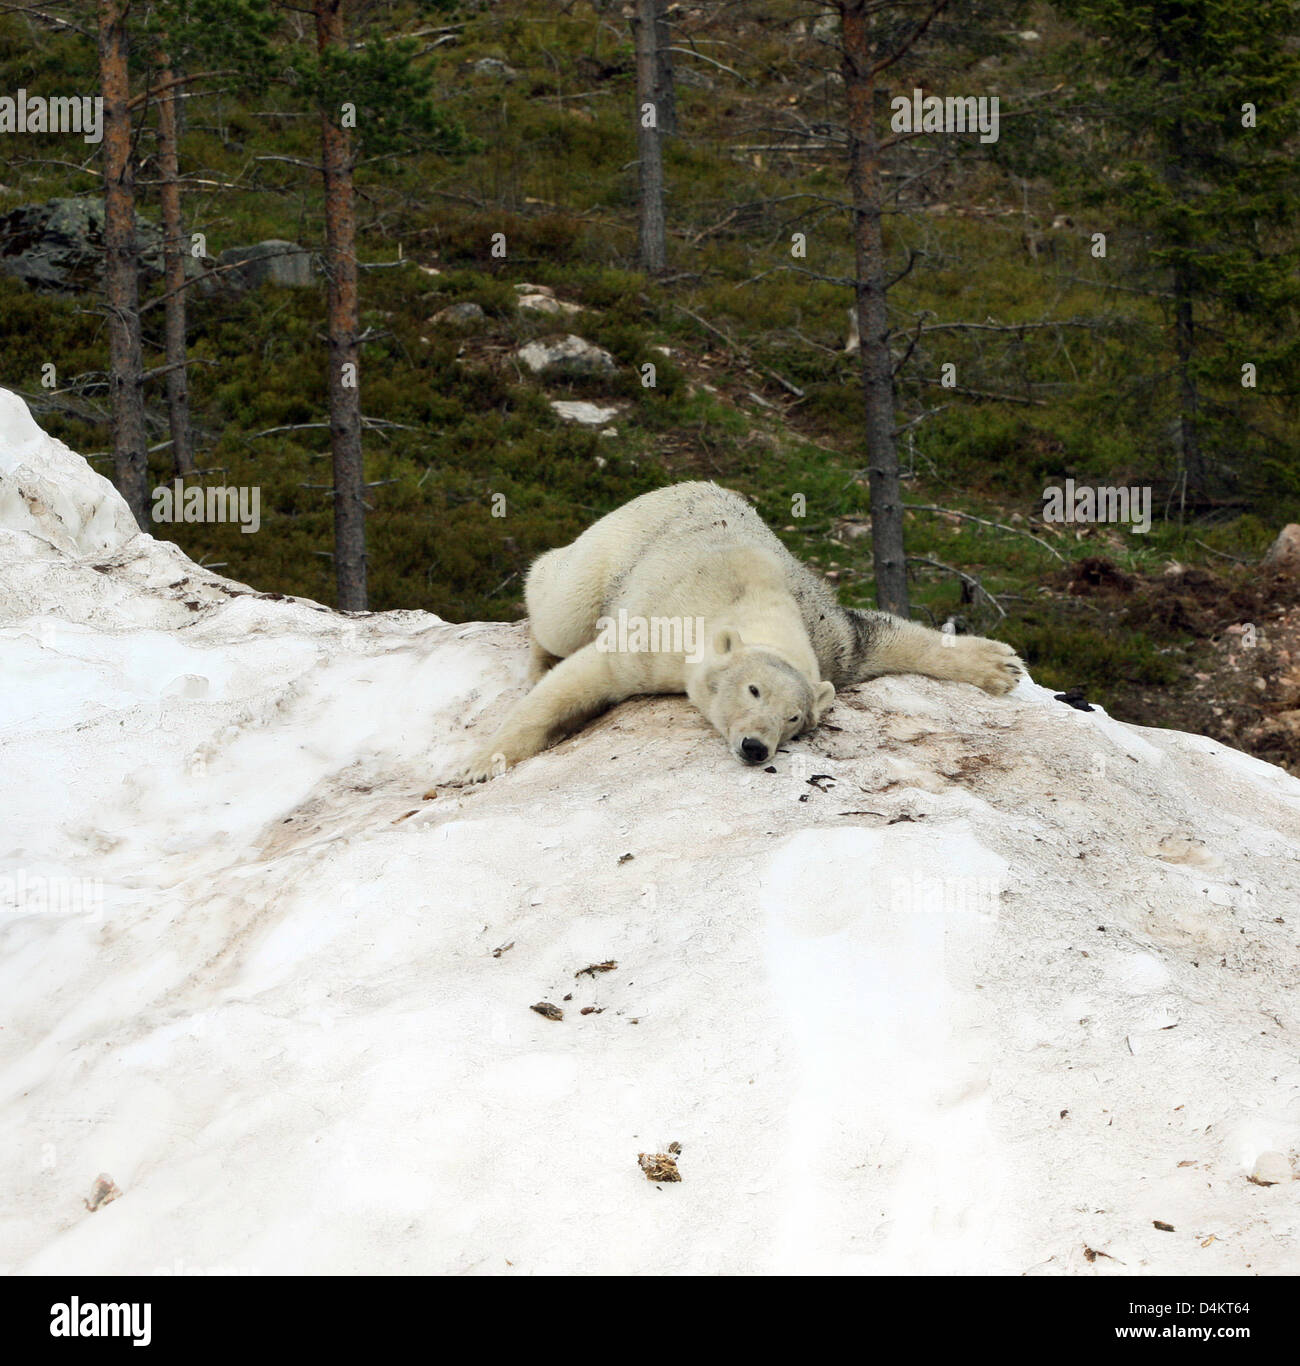 A handout released by Polar World wilflife park sees polar bear ?Wilbaer? frolicking in Orsa, Sweden, middle of - Stock Image